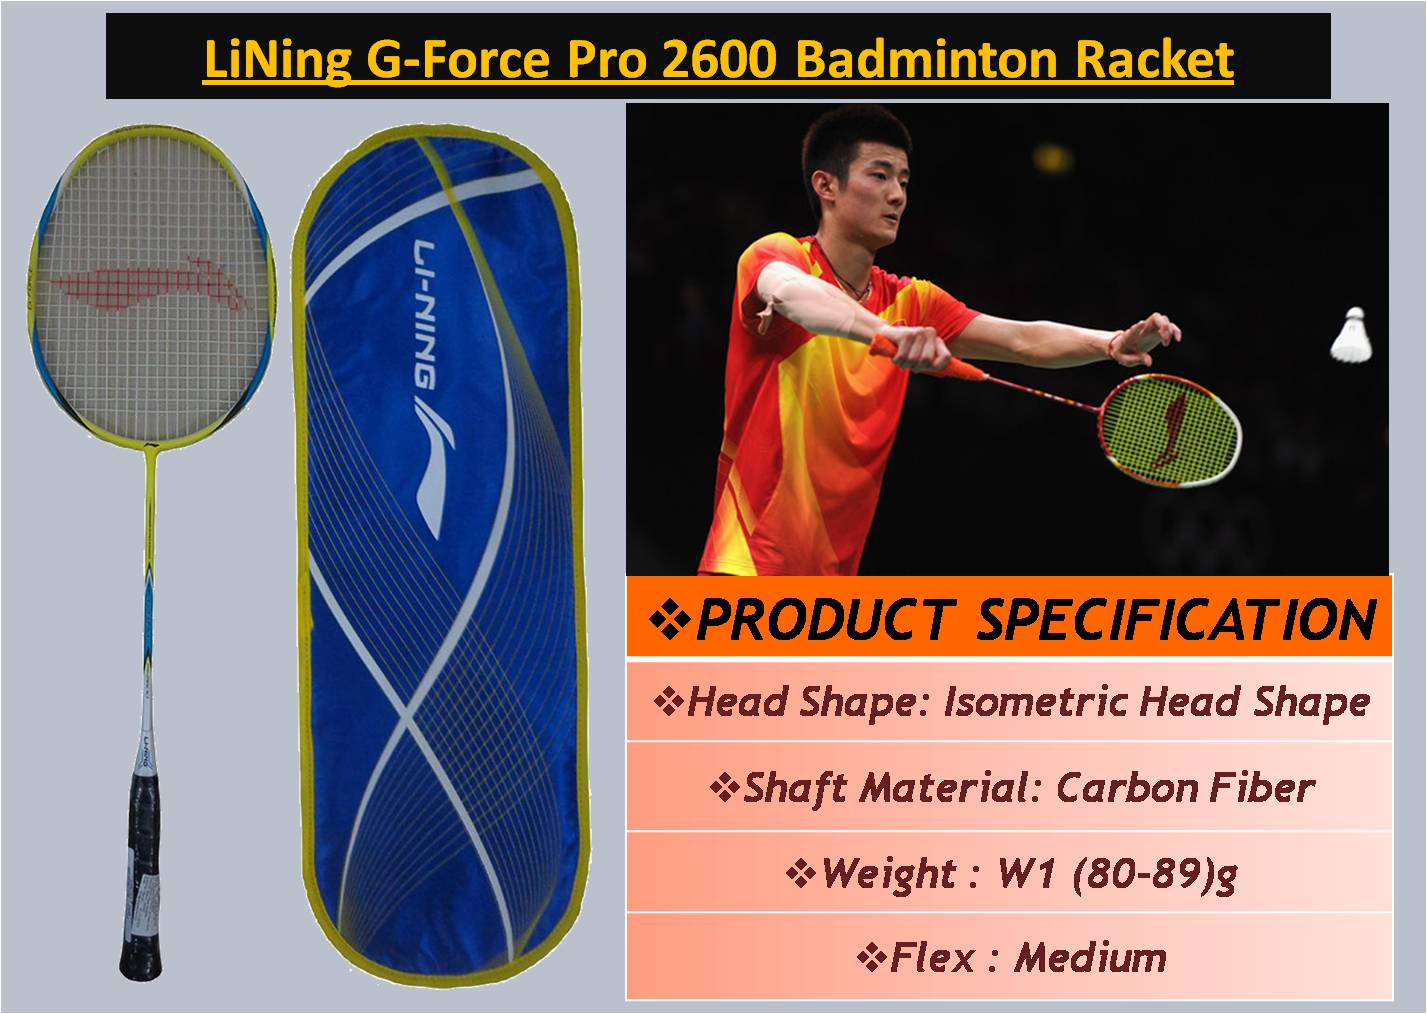 LiNing G-Force Pro 2600 Badminton Racket